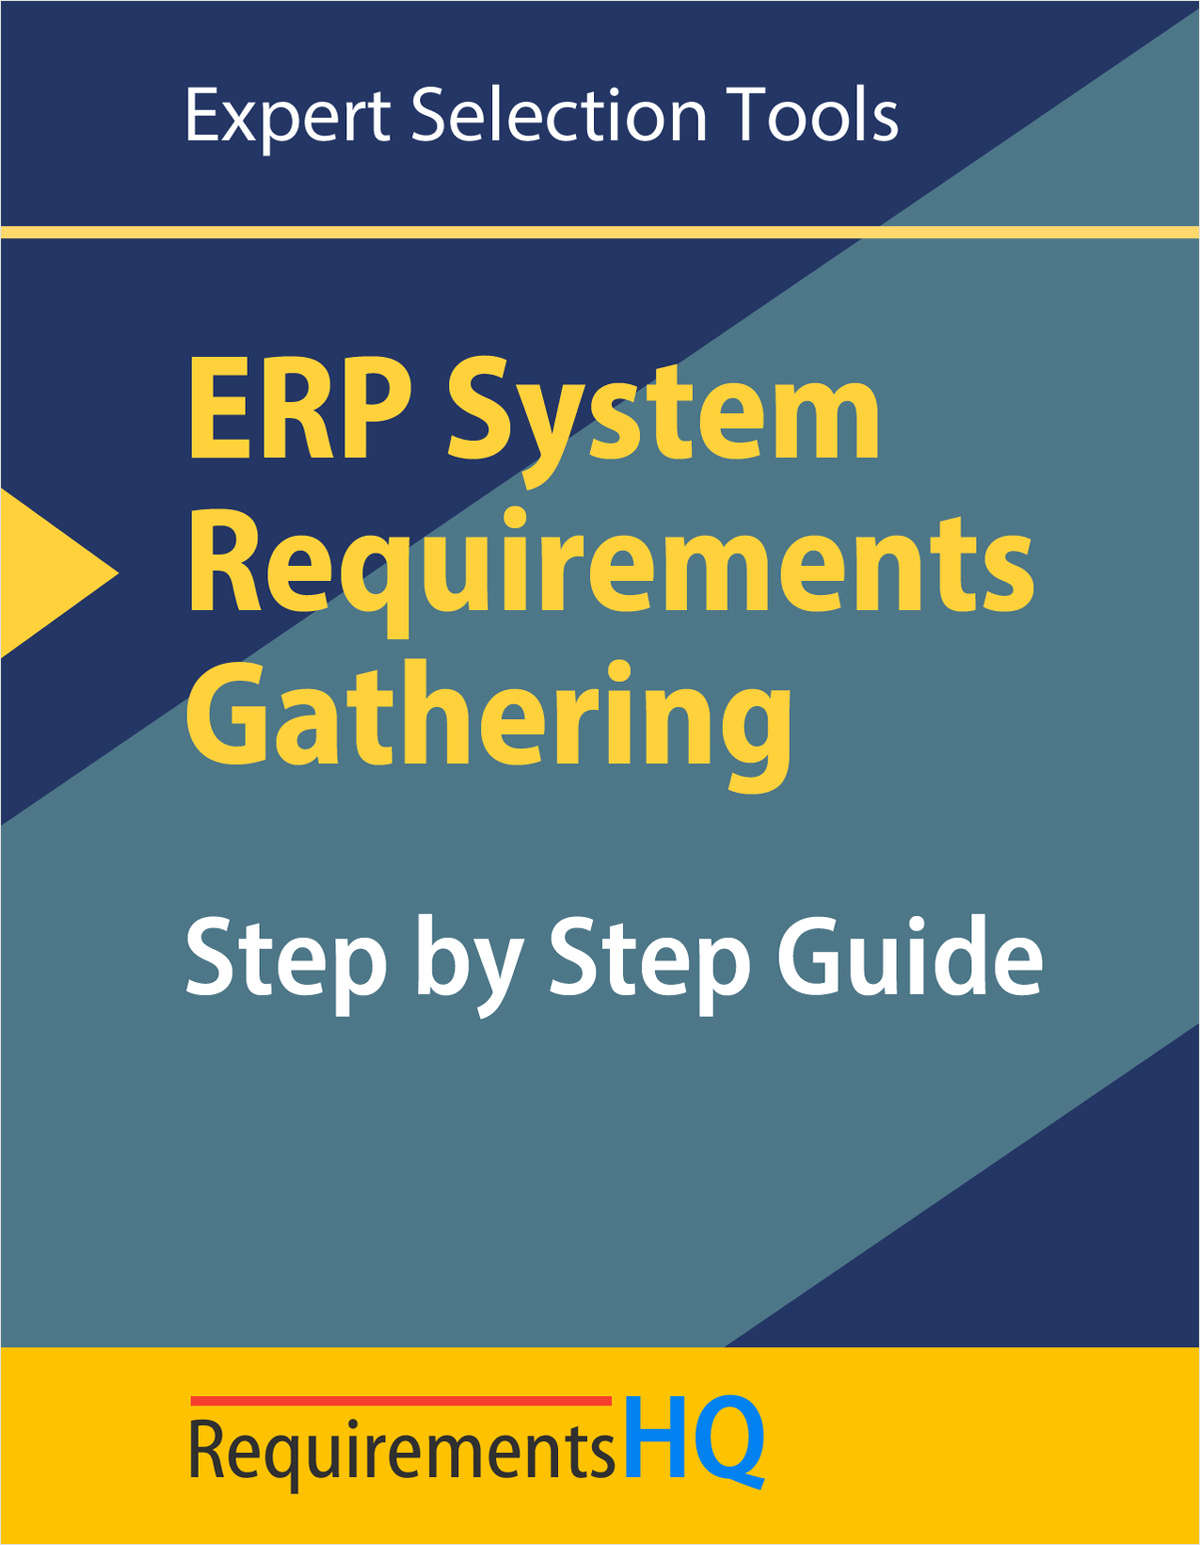 Business Requirements Gathering for an ERP System Selection